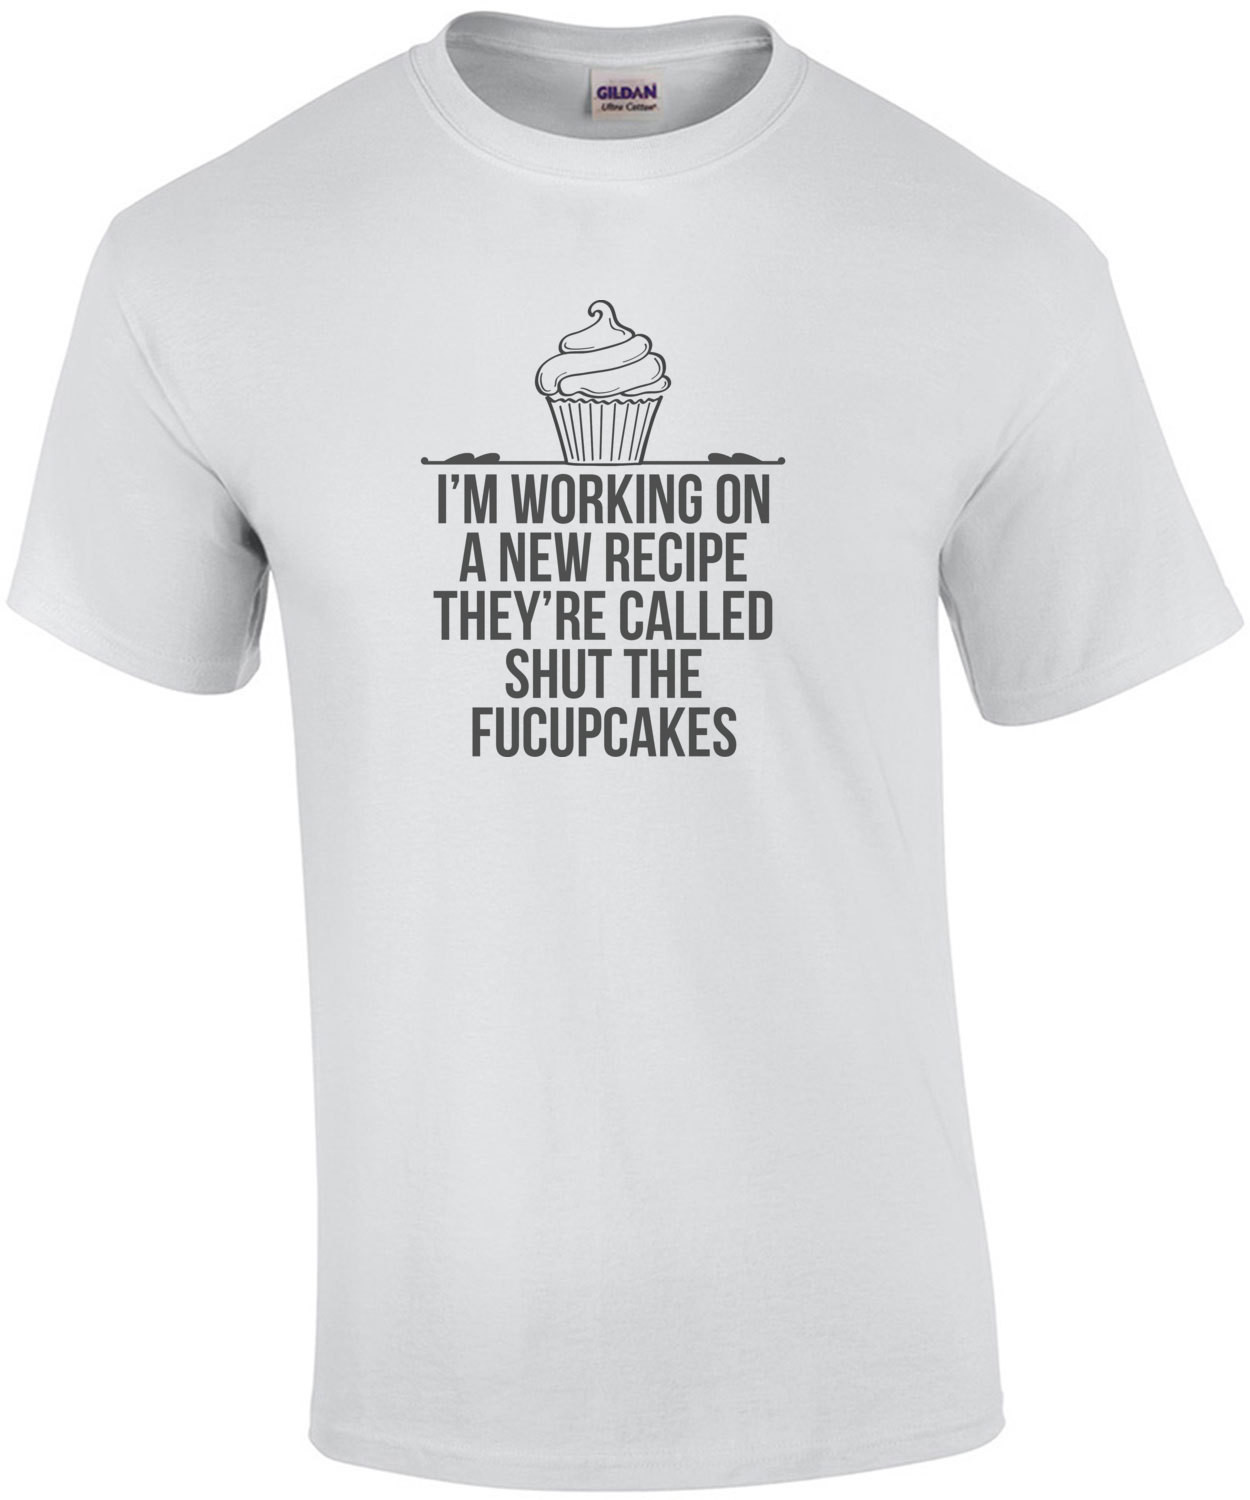 I'm Working On a New Recipe Shirt